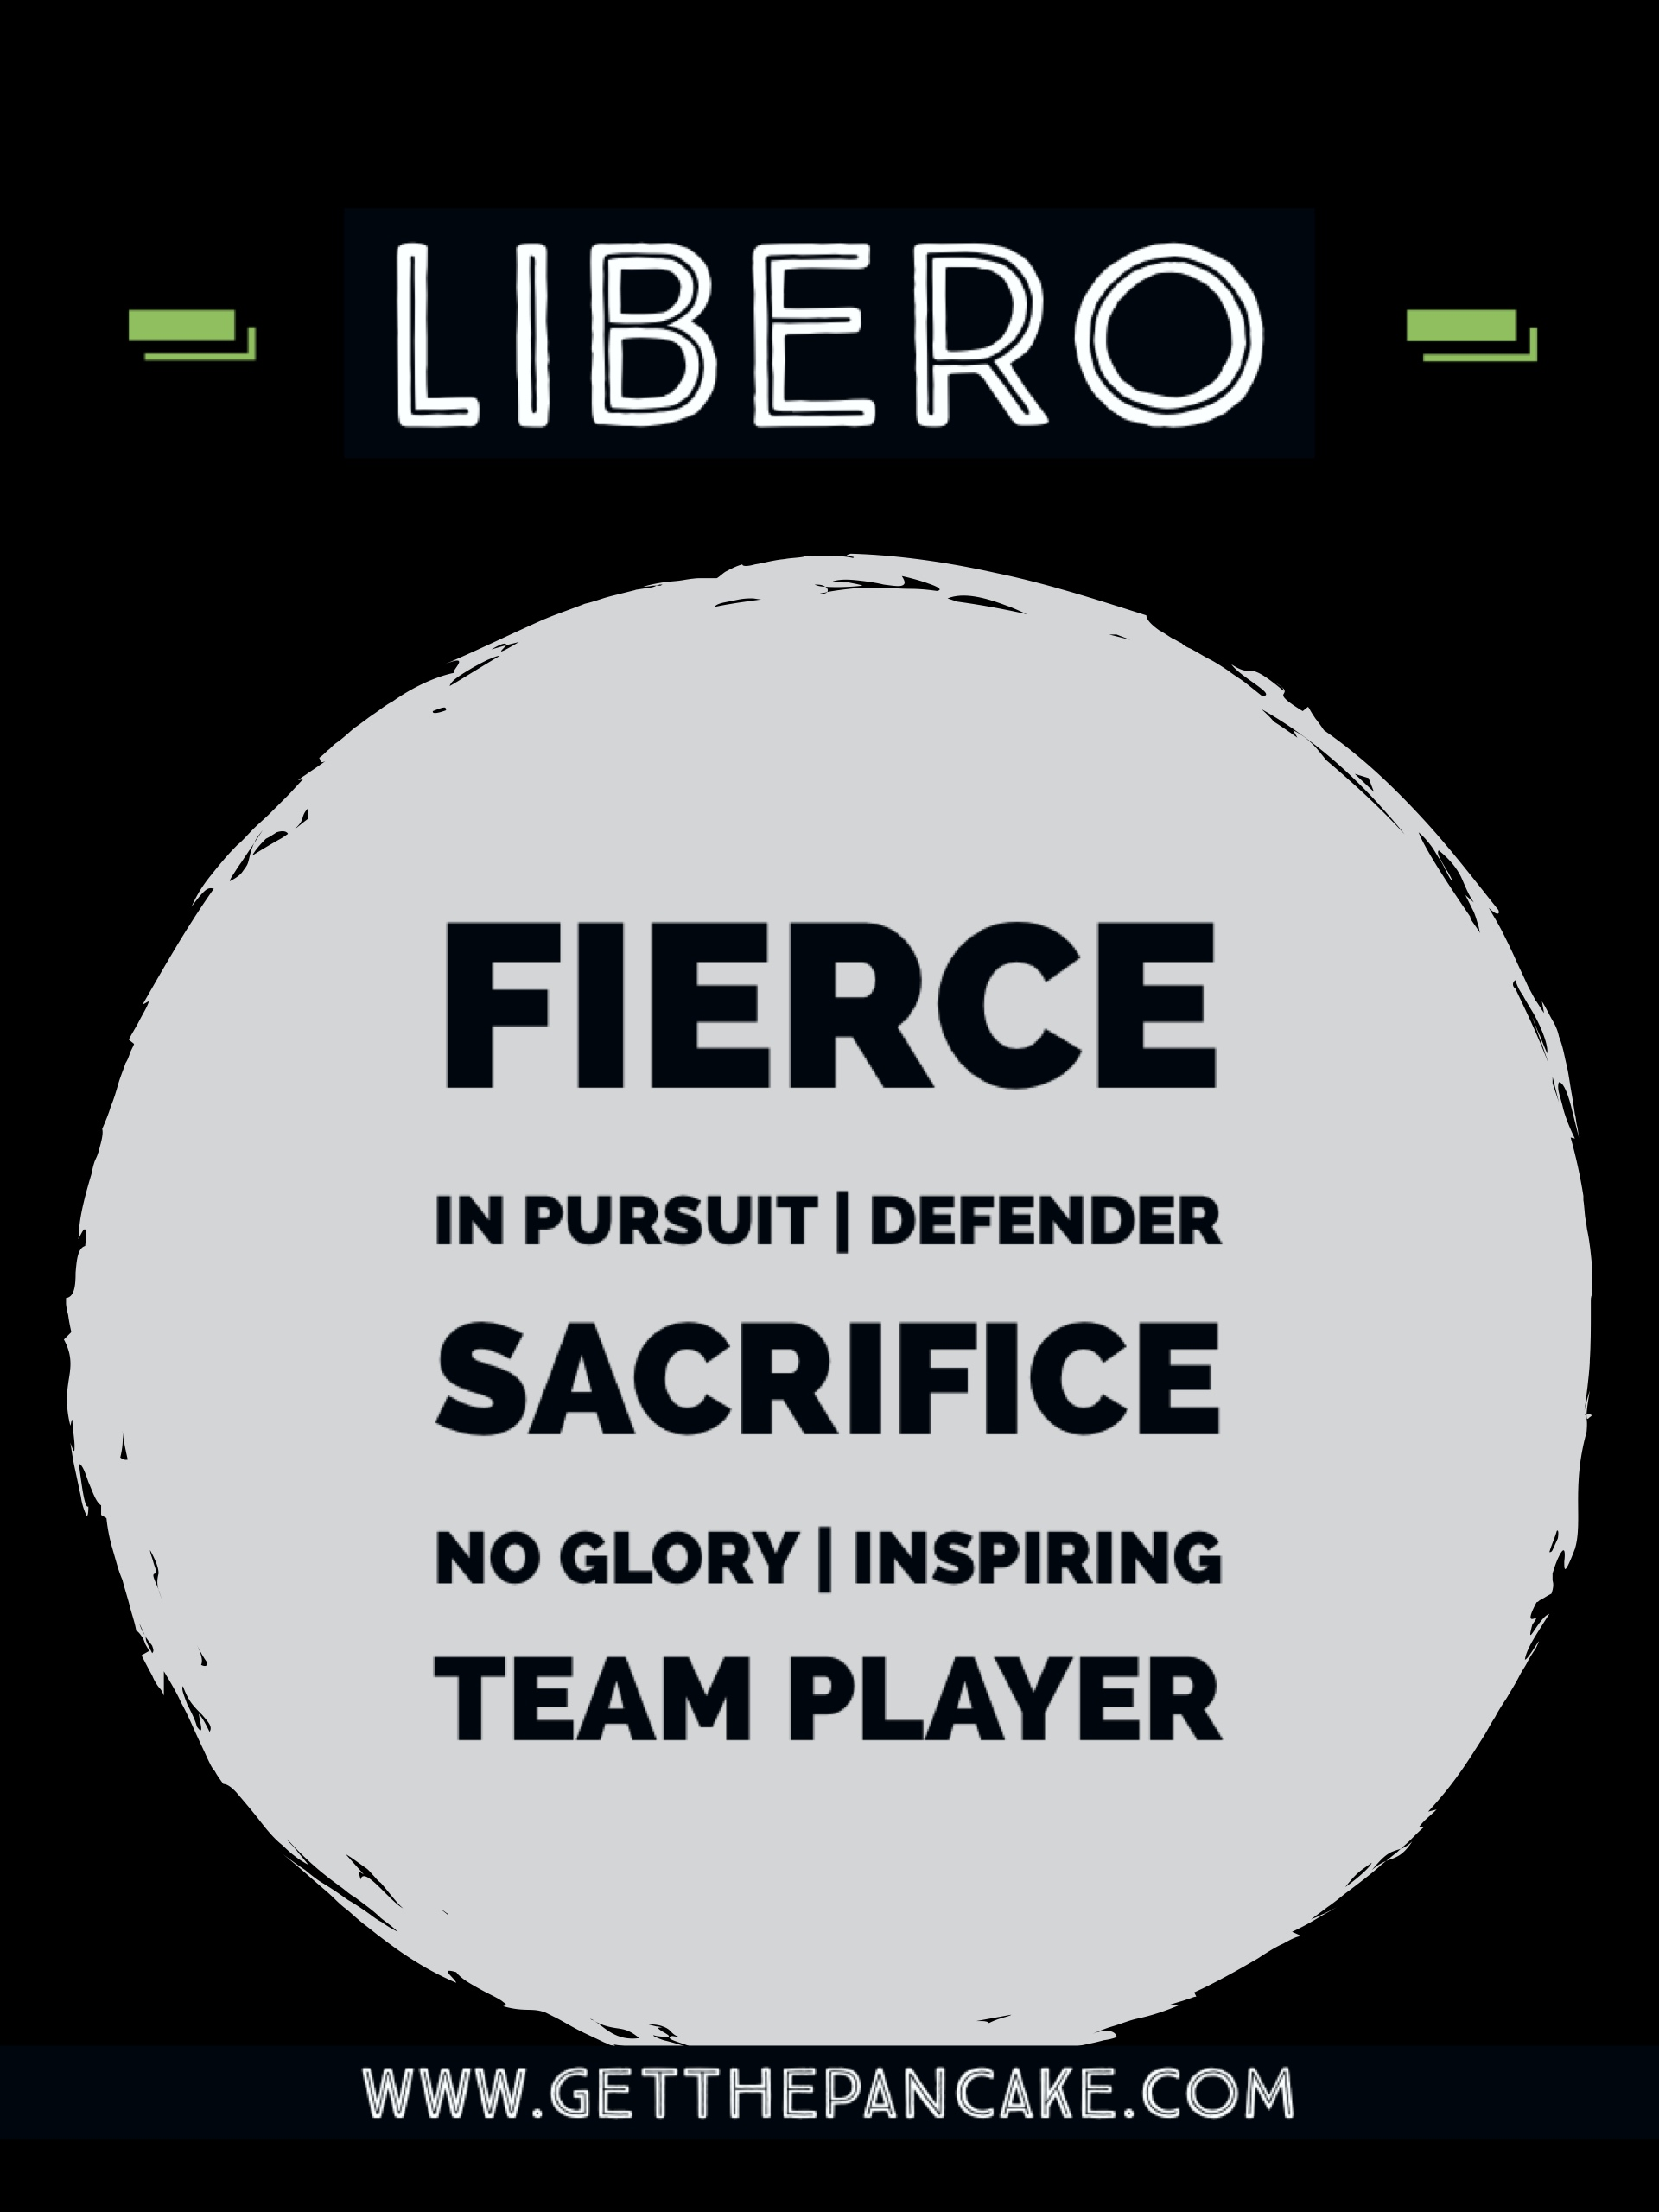 Volleyball Libero Description